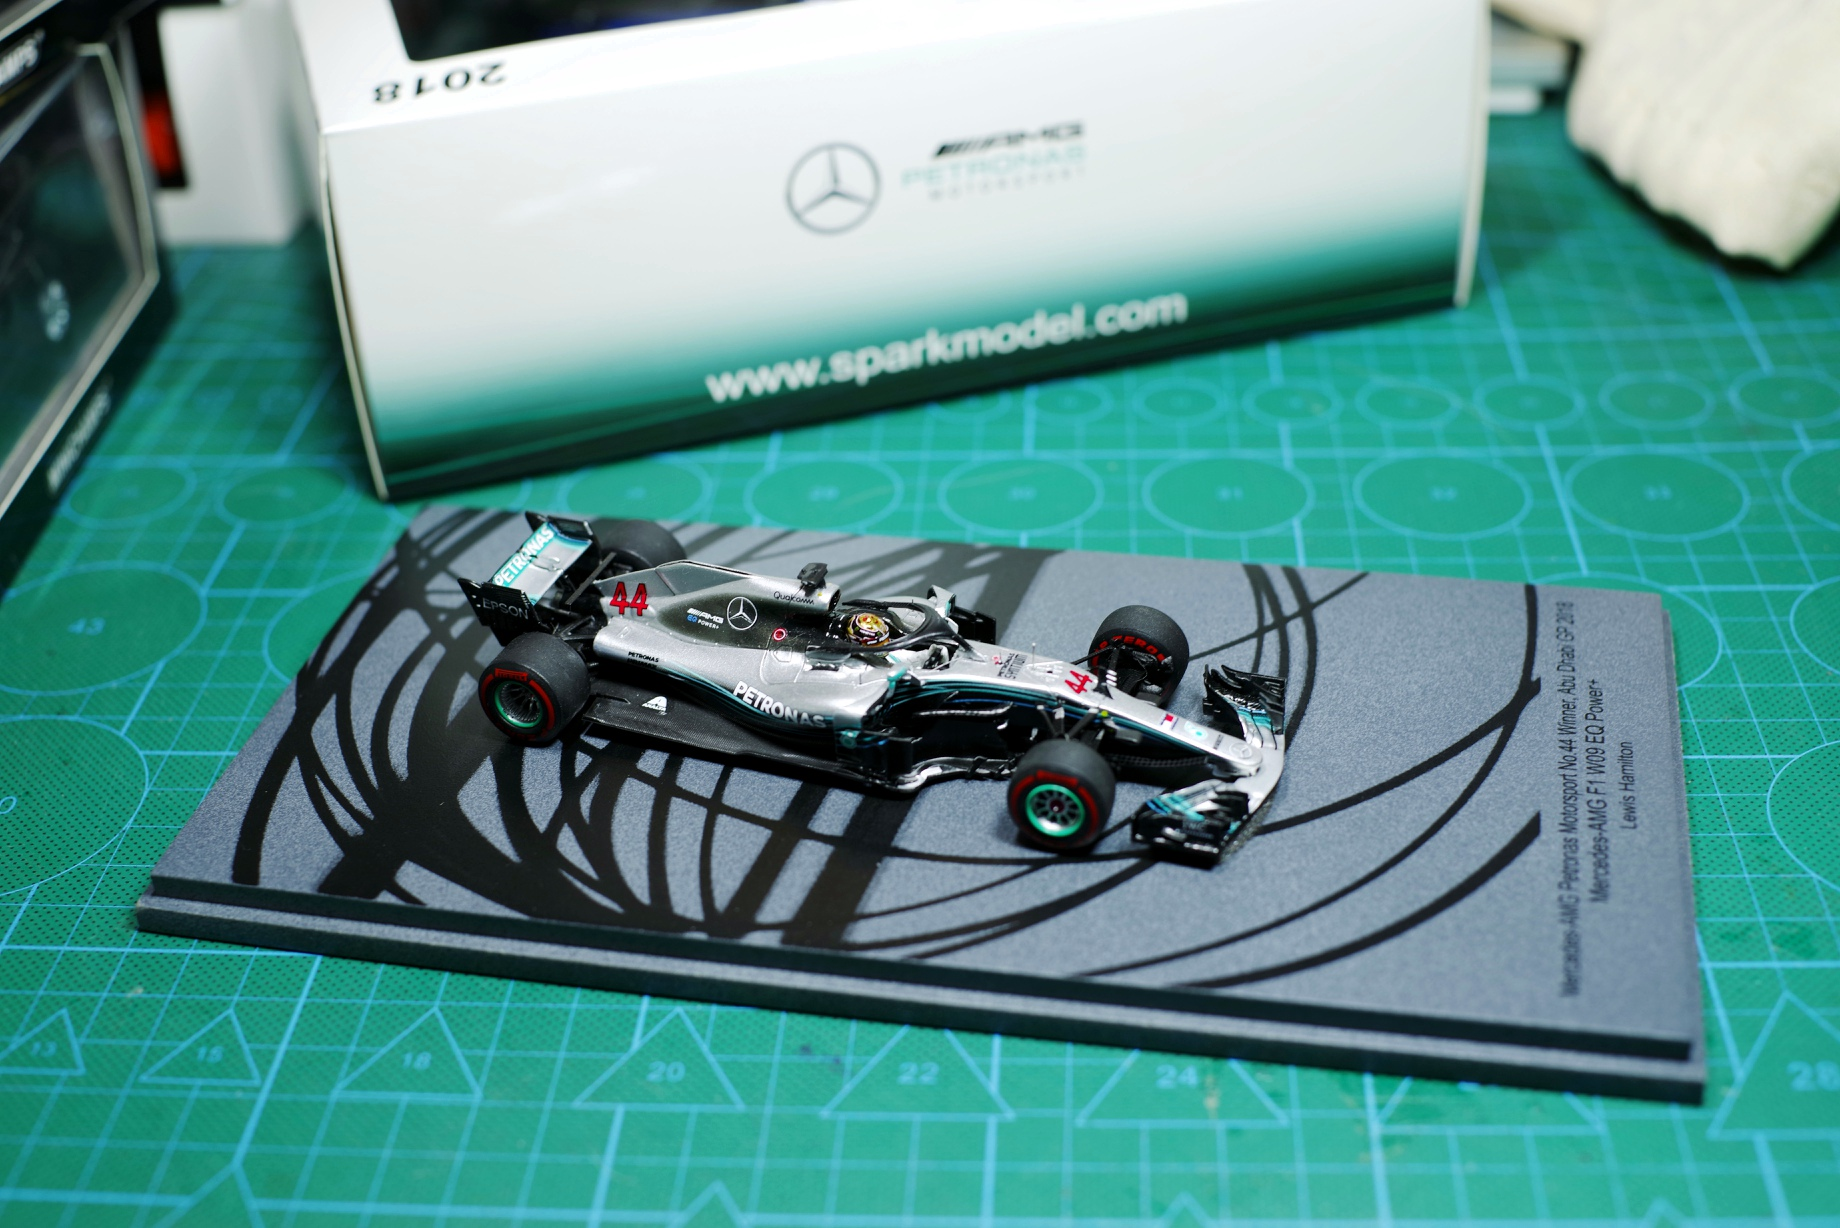 SPARK Model 1/43 <font><b>2018</b></font> Abu Dhabi station <font><b>F1</b></font> Benz AMG W09 Lewis Hamilton Diecast Car Model With Original Box Collection Car Gift image